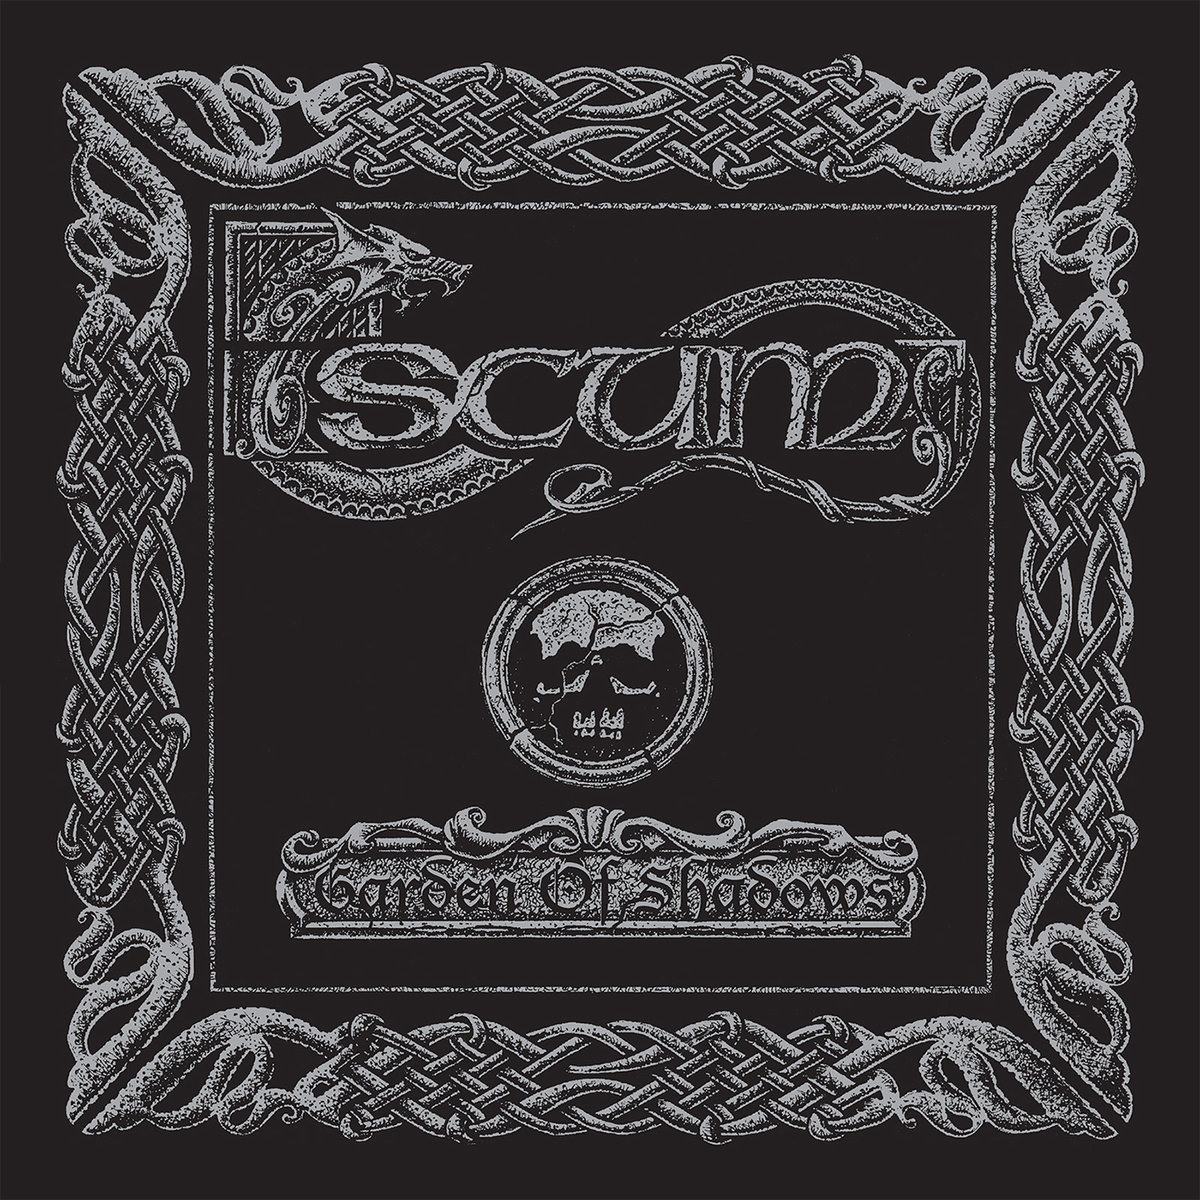 Scum – Garden Of Shadows